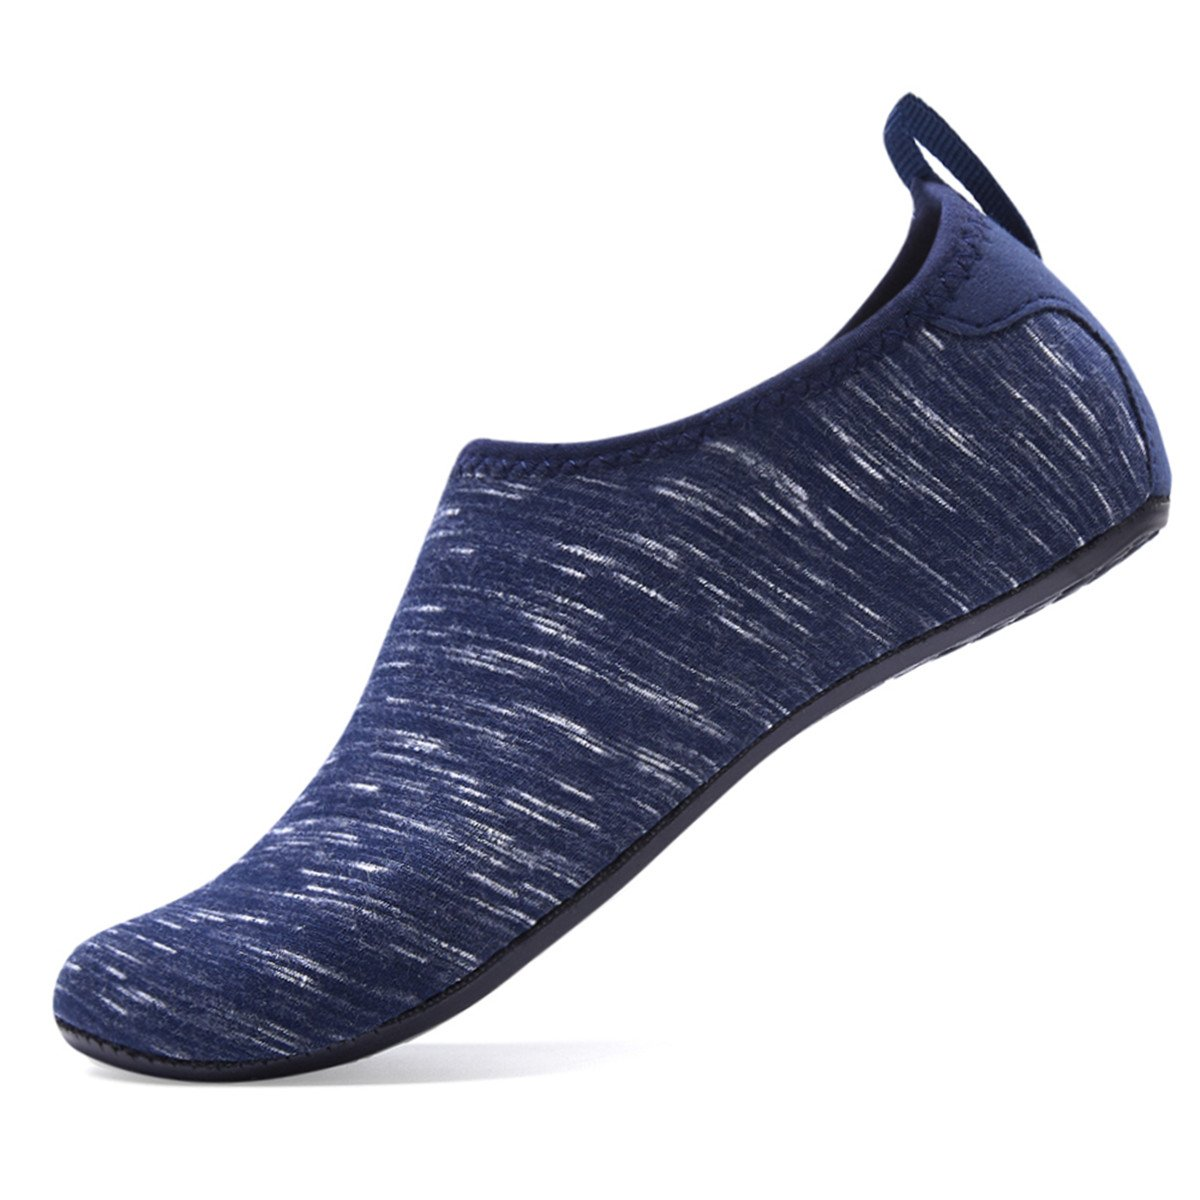 Water Shoes for Womens and Mens Summer Barefoot Shoes Quick Dry Aqua Socks for Beach Swim Yoga Exercise B07CZW522N XL (Women:10.5-11.5/Men:9-9.5)|Waves/Dark Blue